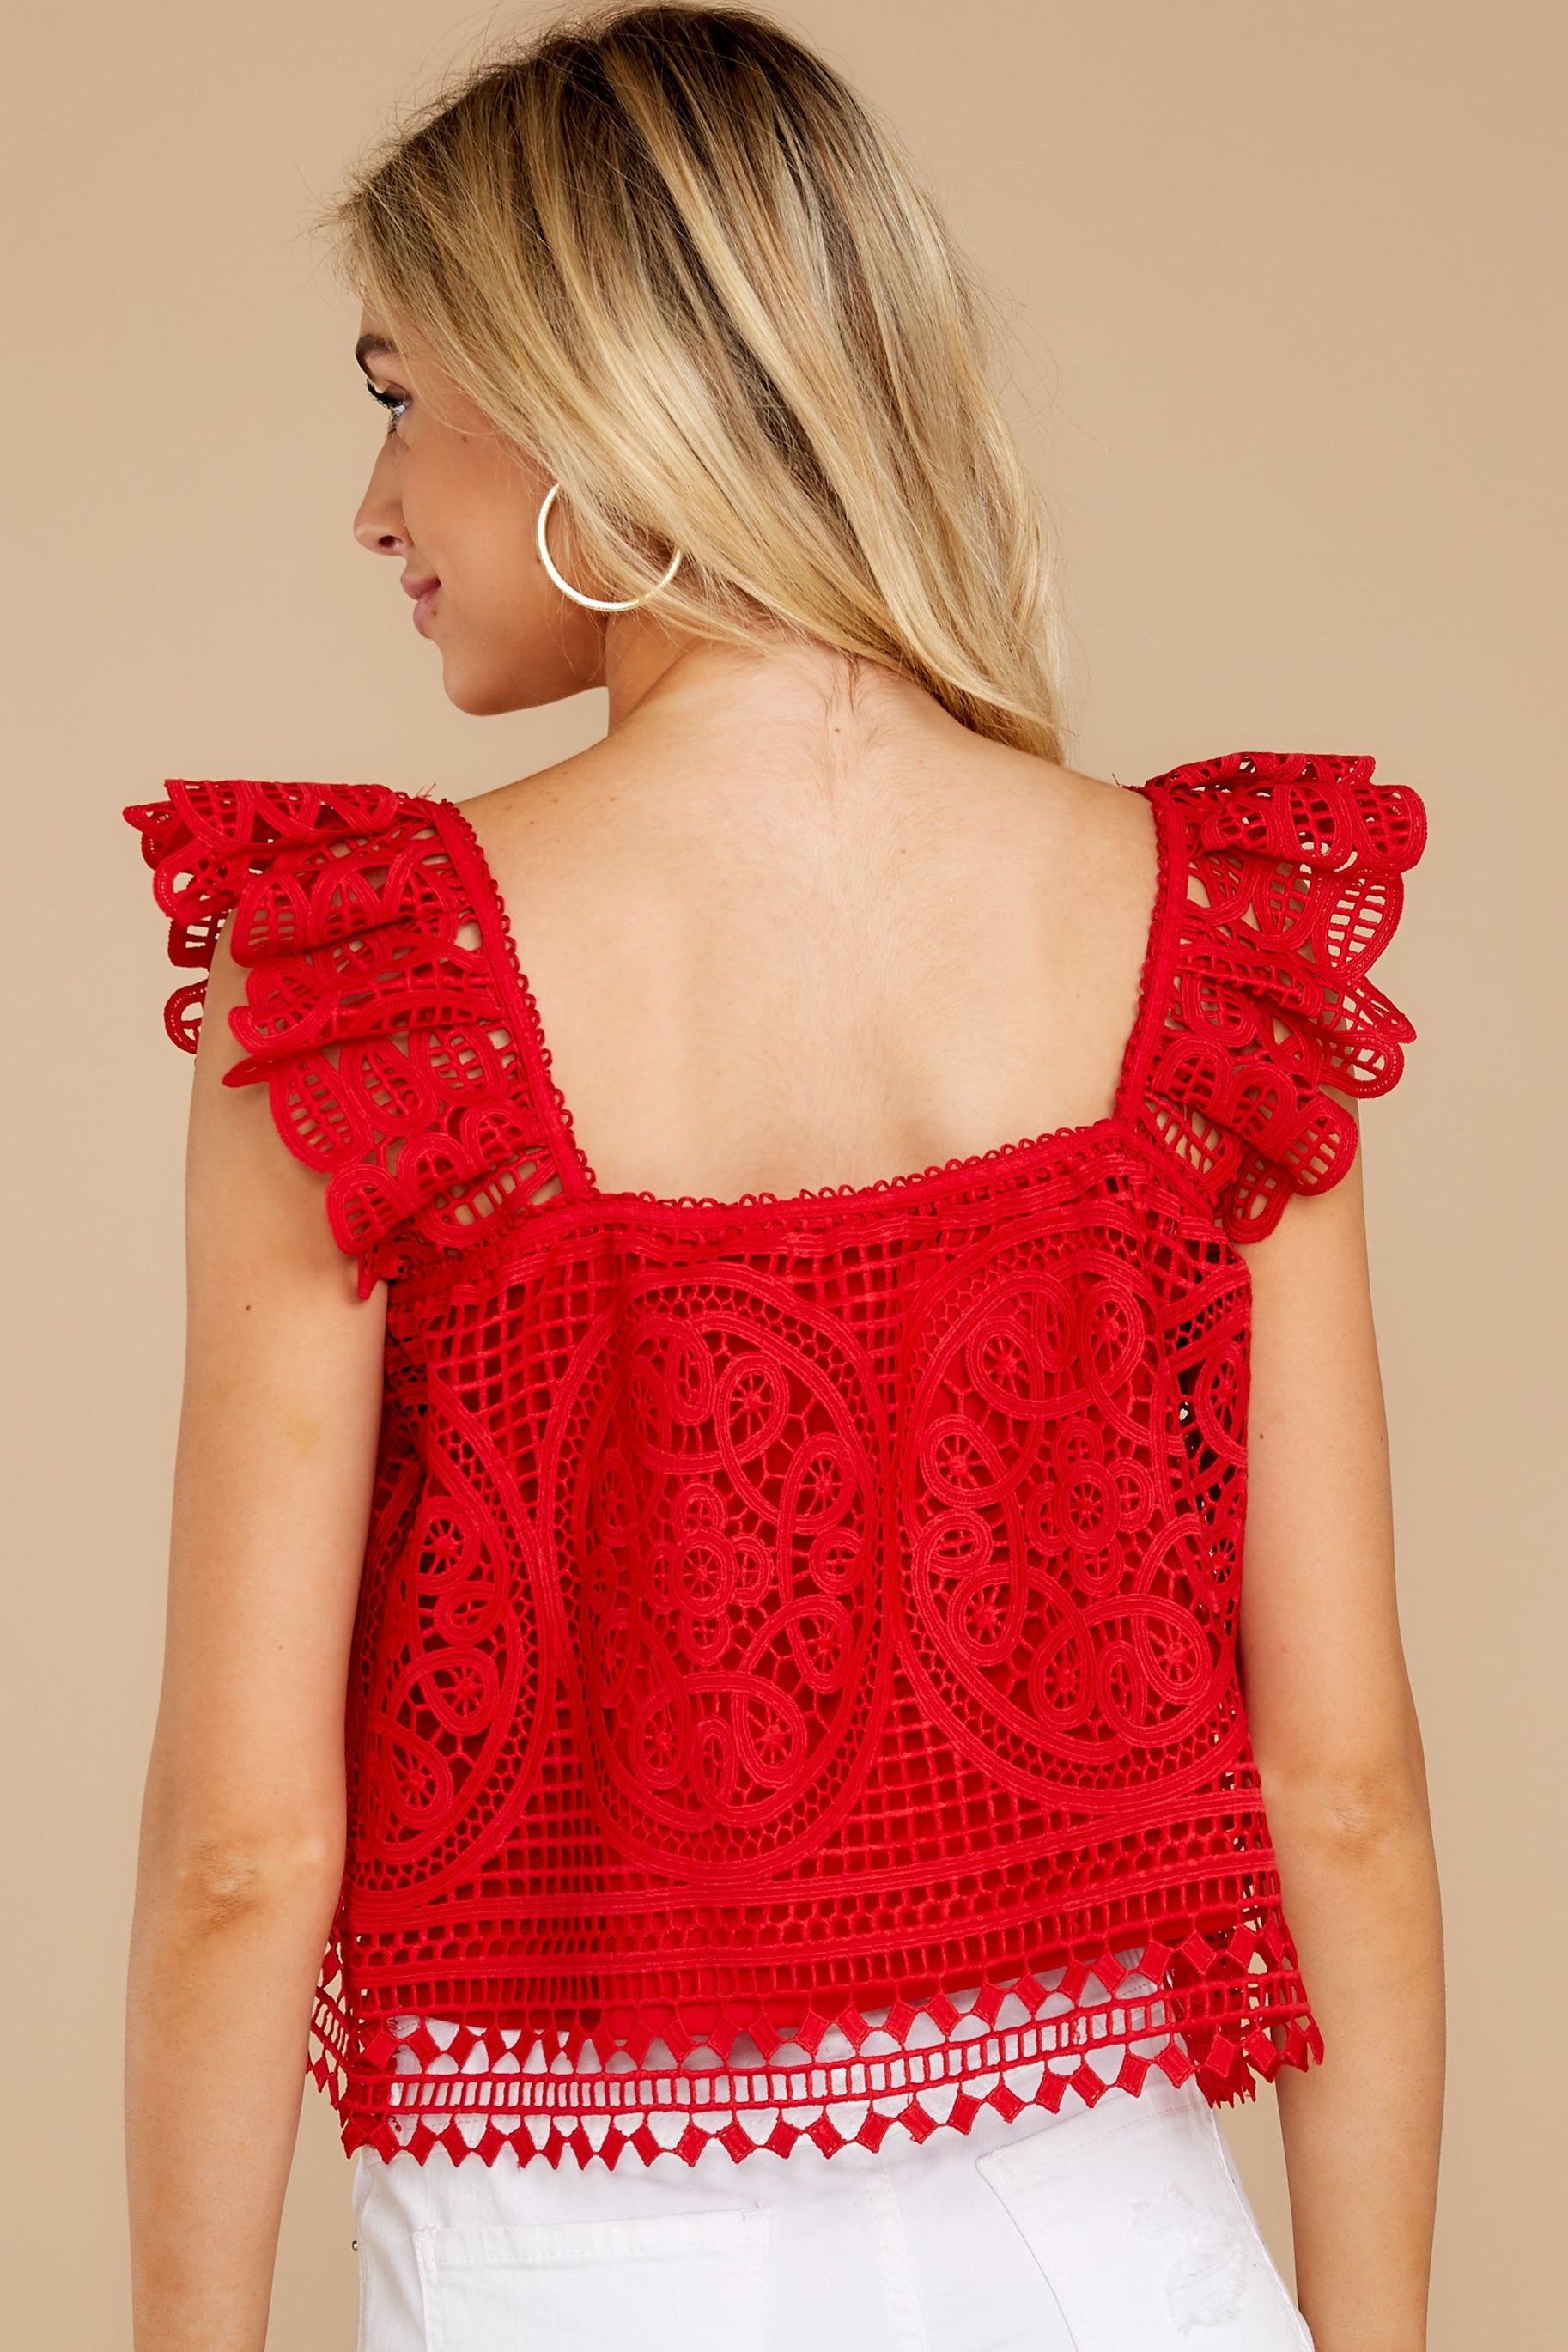 8 Right Time Right Place Red Lace Top at redressboutique.com